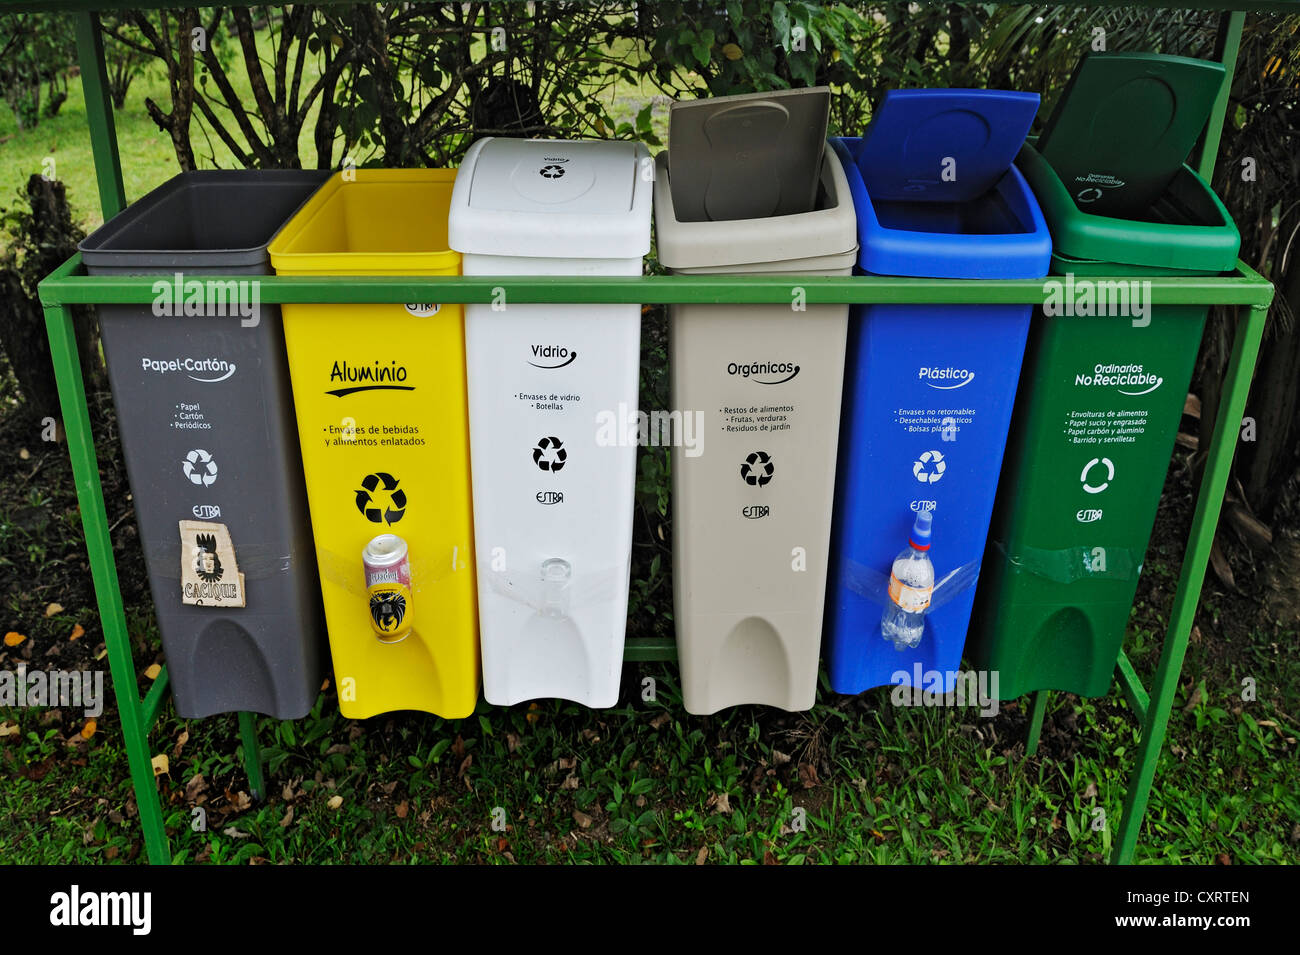 Exemplary waste separation, Monteverde, Alajuela province, Costa Rica, Central America - Stock Image